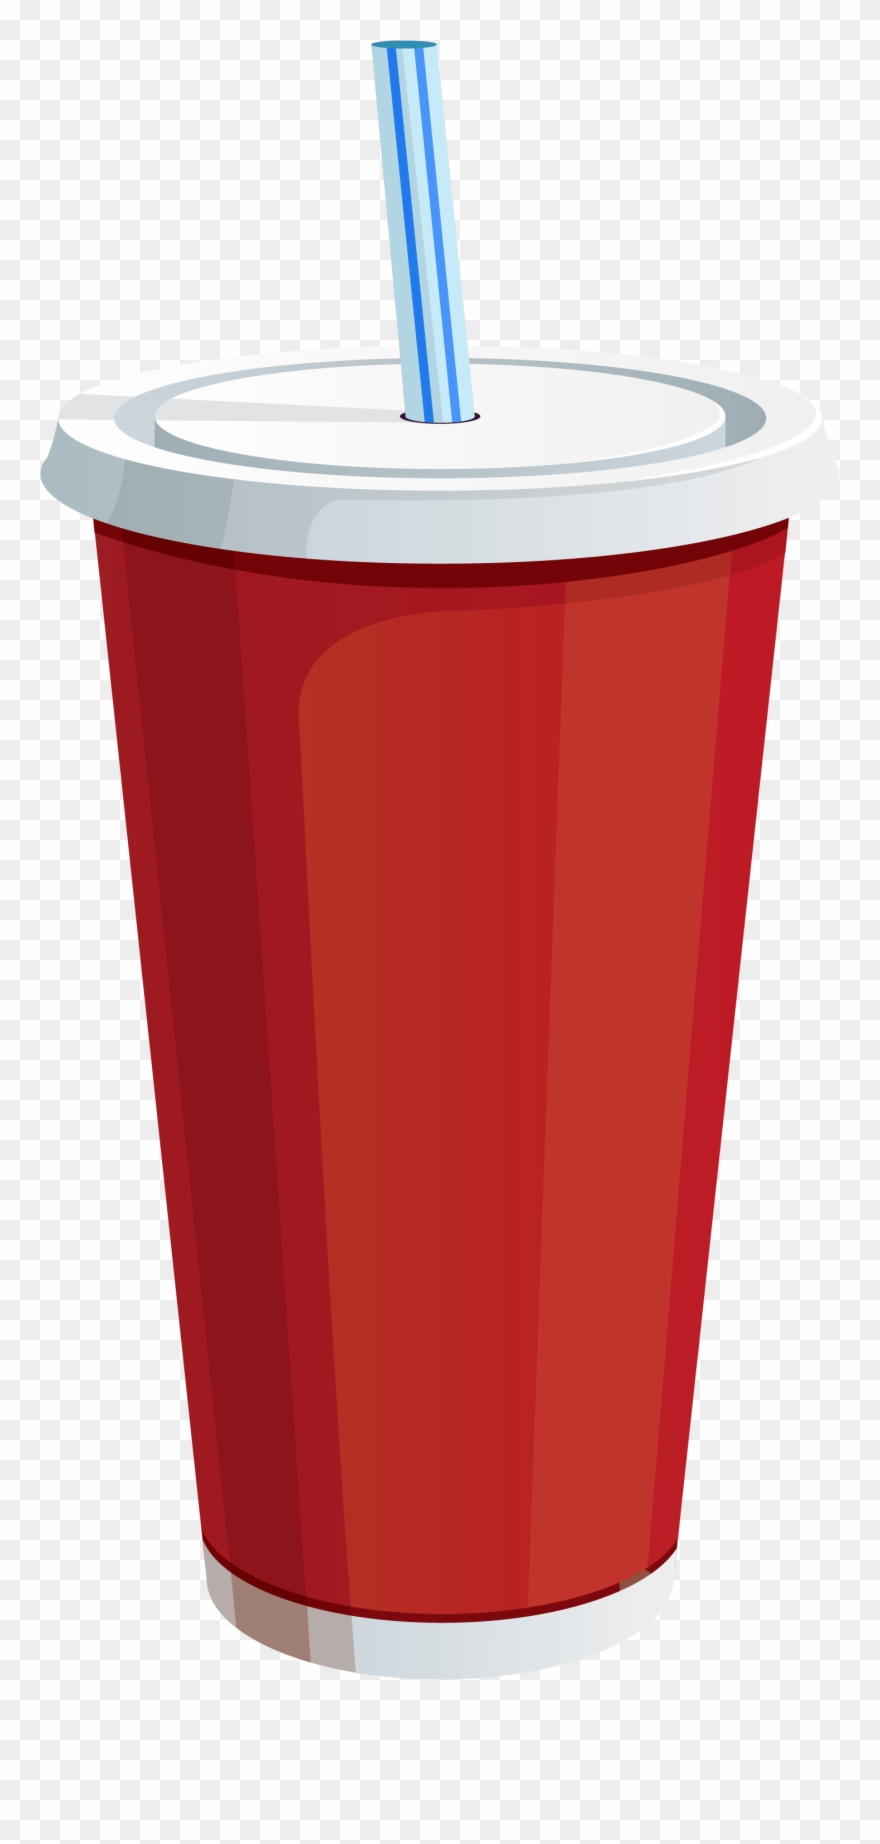 Soda clipart transparent clipart royalty free download Banner Freeuse Download Soda Cup Clipart - Drinks In Cup Png ... clipart royalty free download